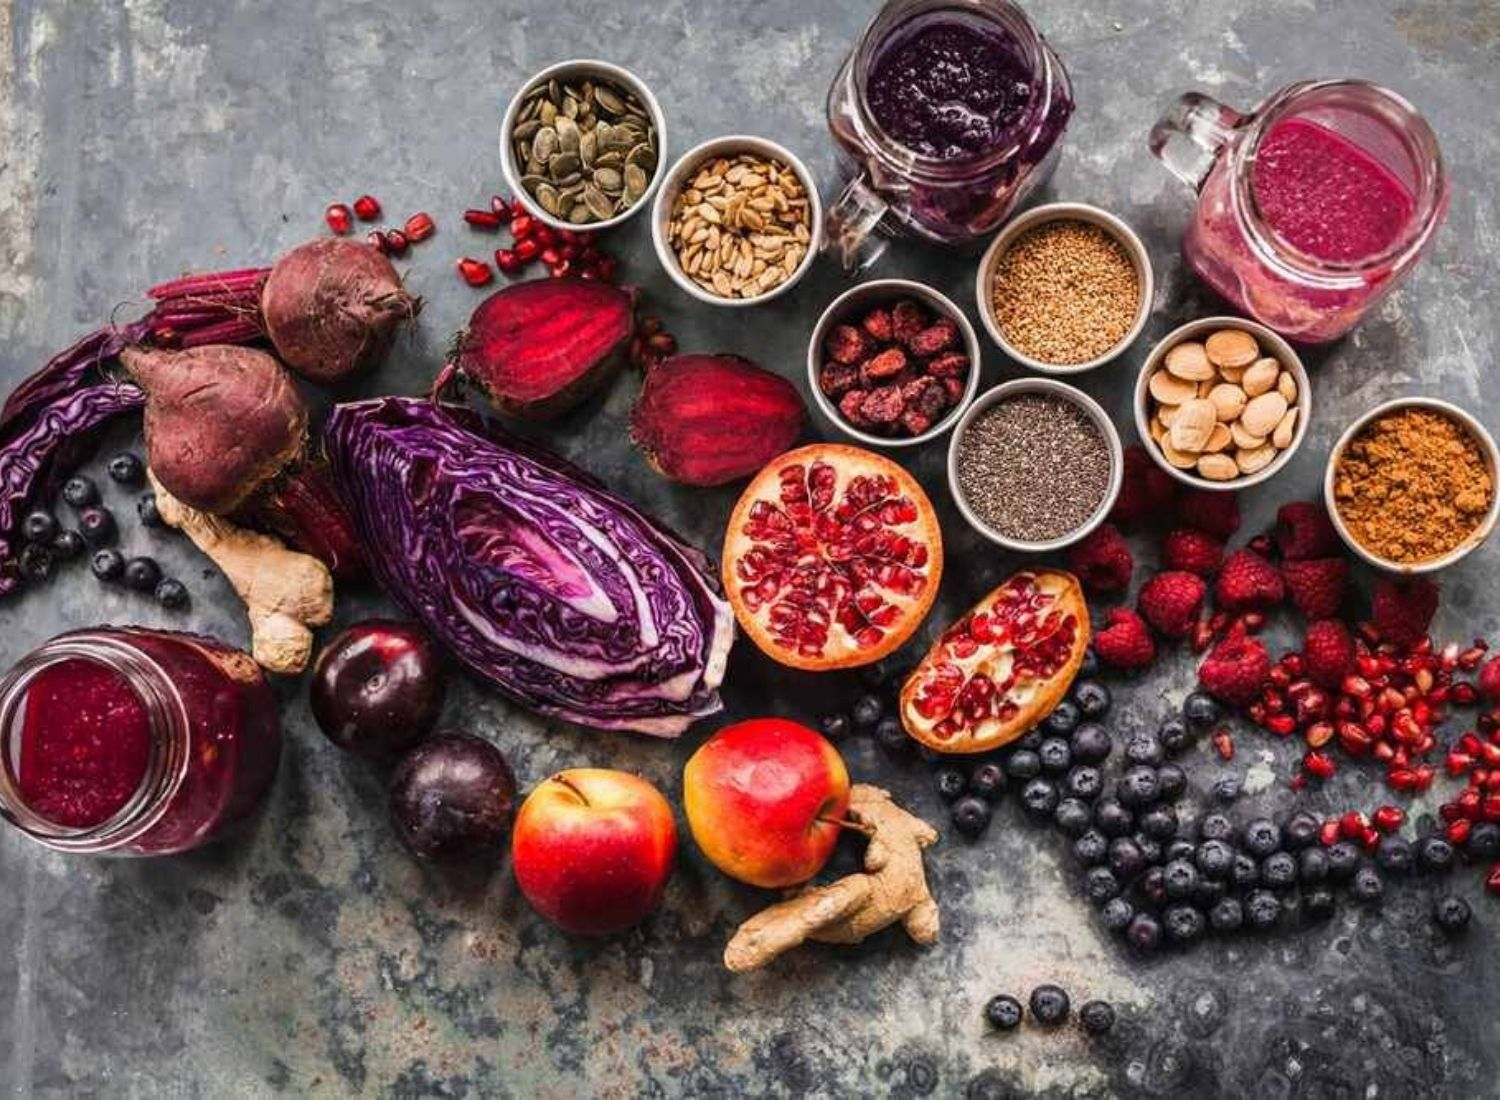 Vegan Superfoods That Are A Powerhouse Of Nutrition